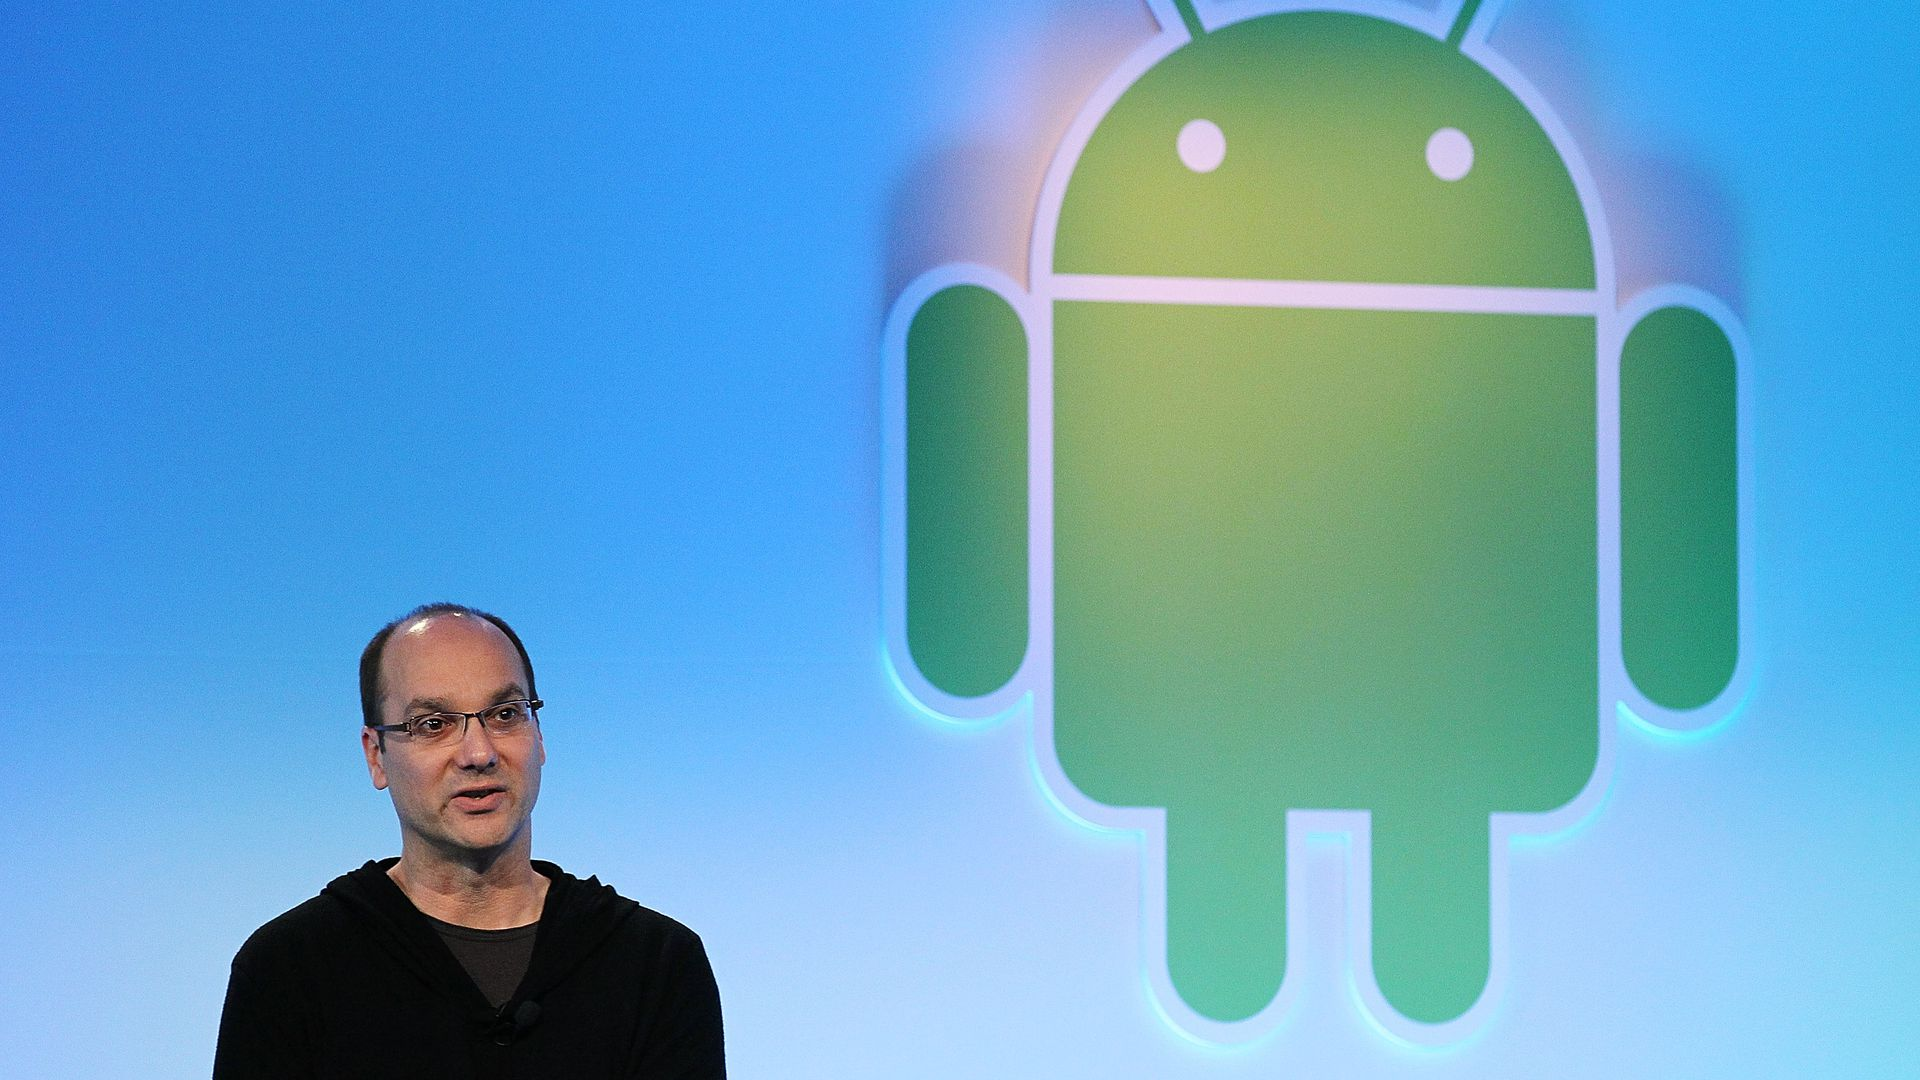 Andy Rubin standing on stage in a sweatsuit.